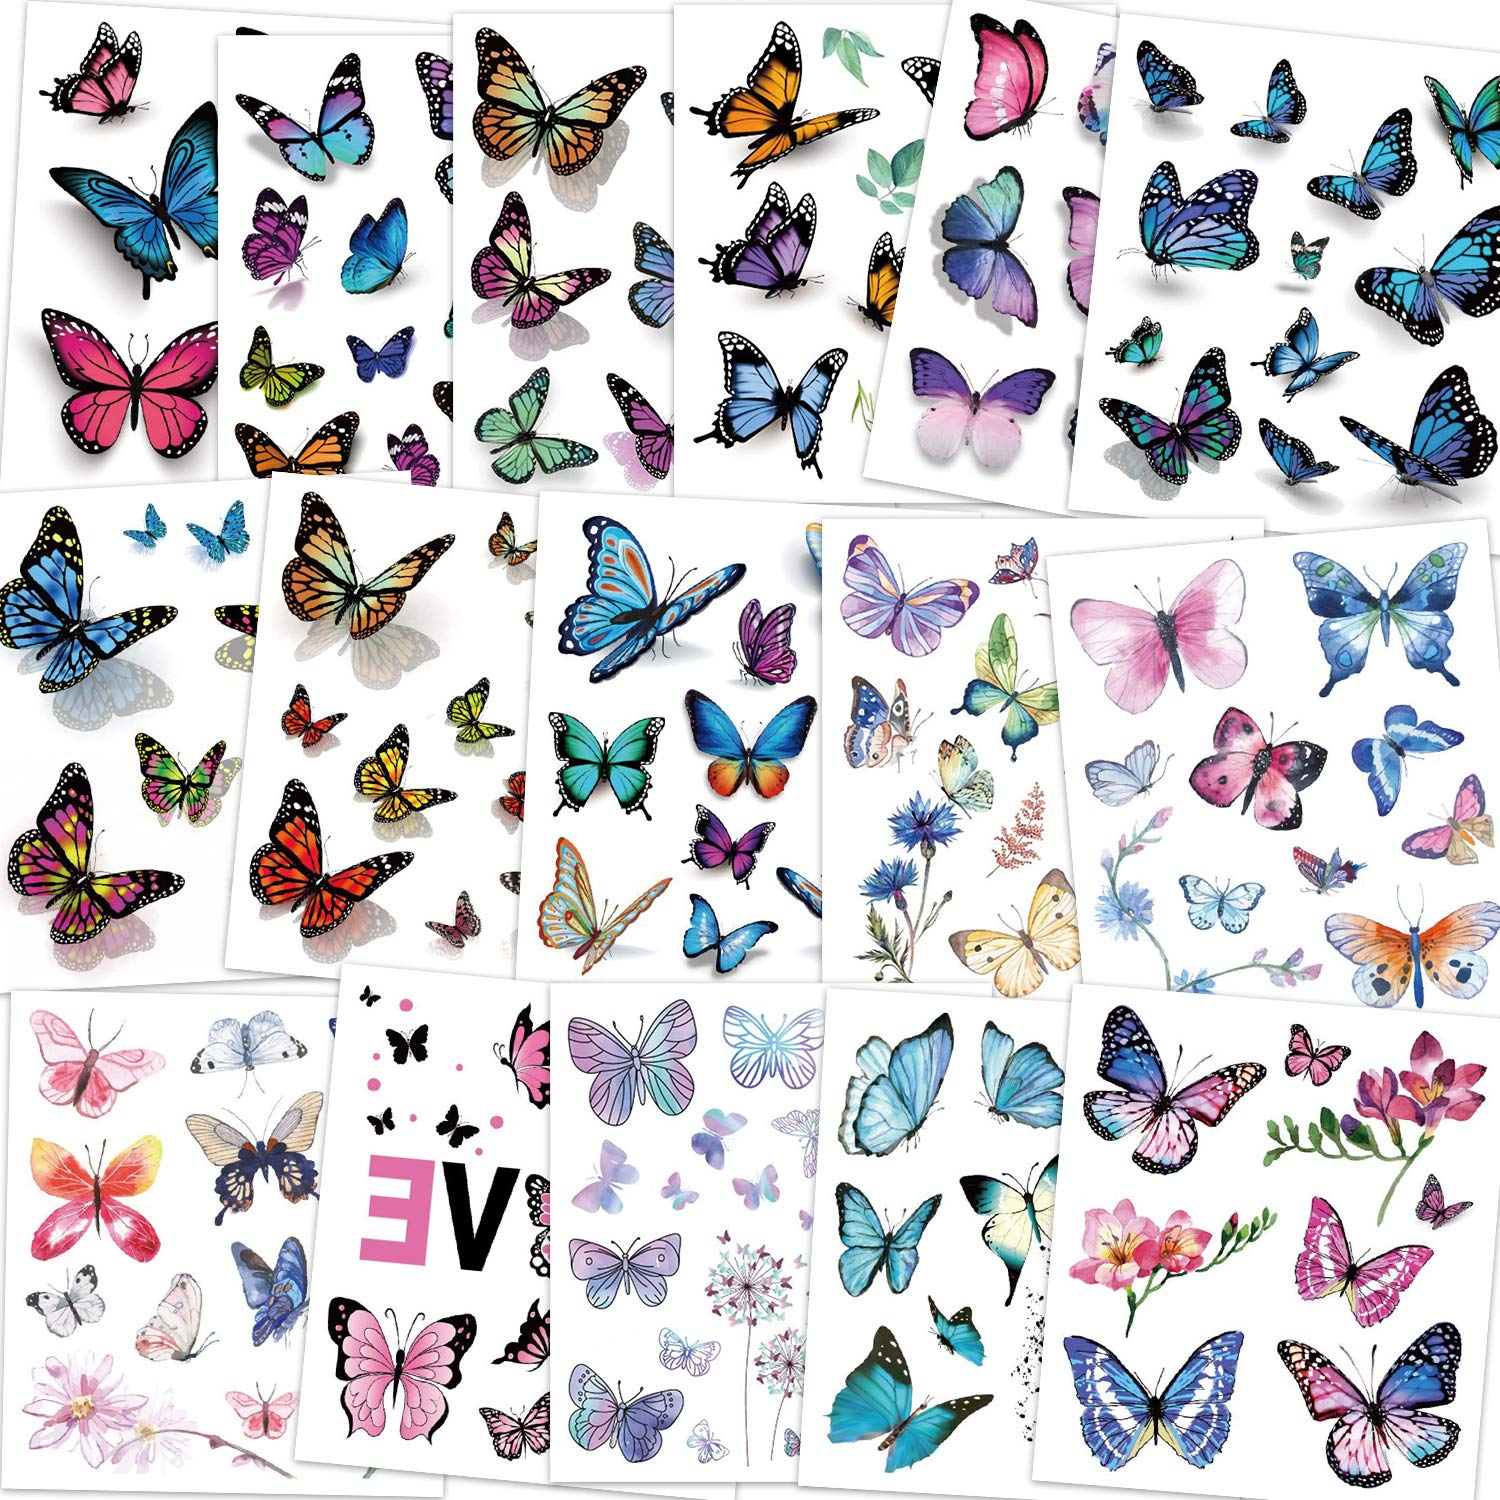 Konsait Kids Tattoos Butterfly Temporary Tattoos, Fake Tattoo Sticker for Girls Kids Women Children's Birthday Party Bag Filler Gift Birthday Girls Party Favors, 16 Sheets